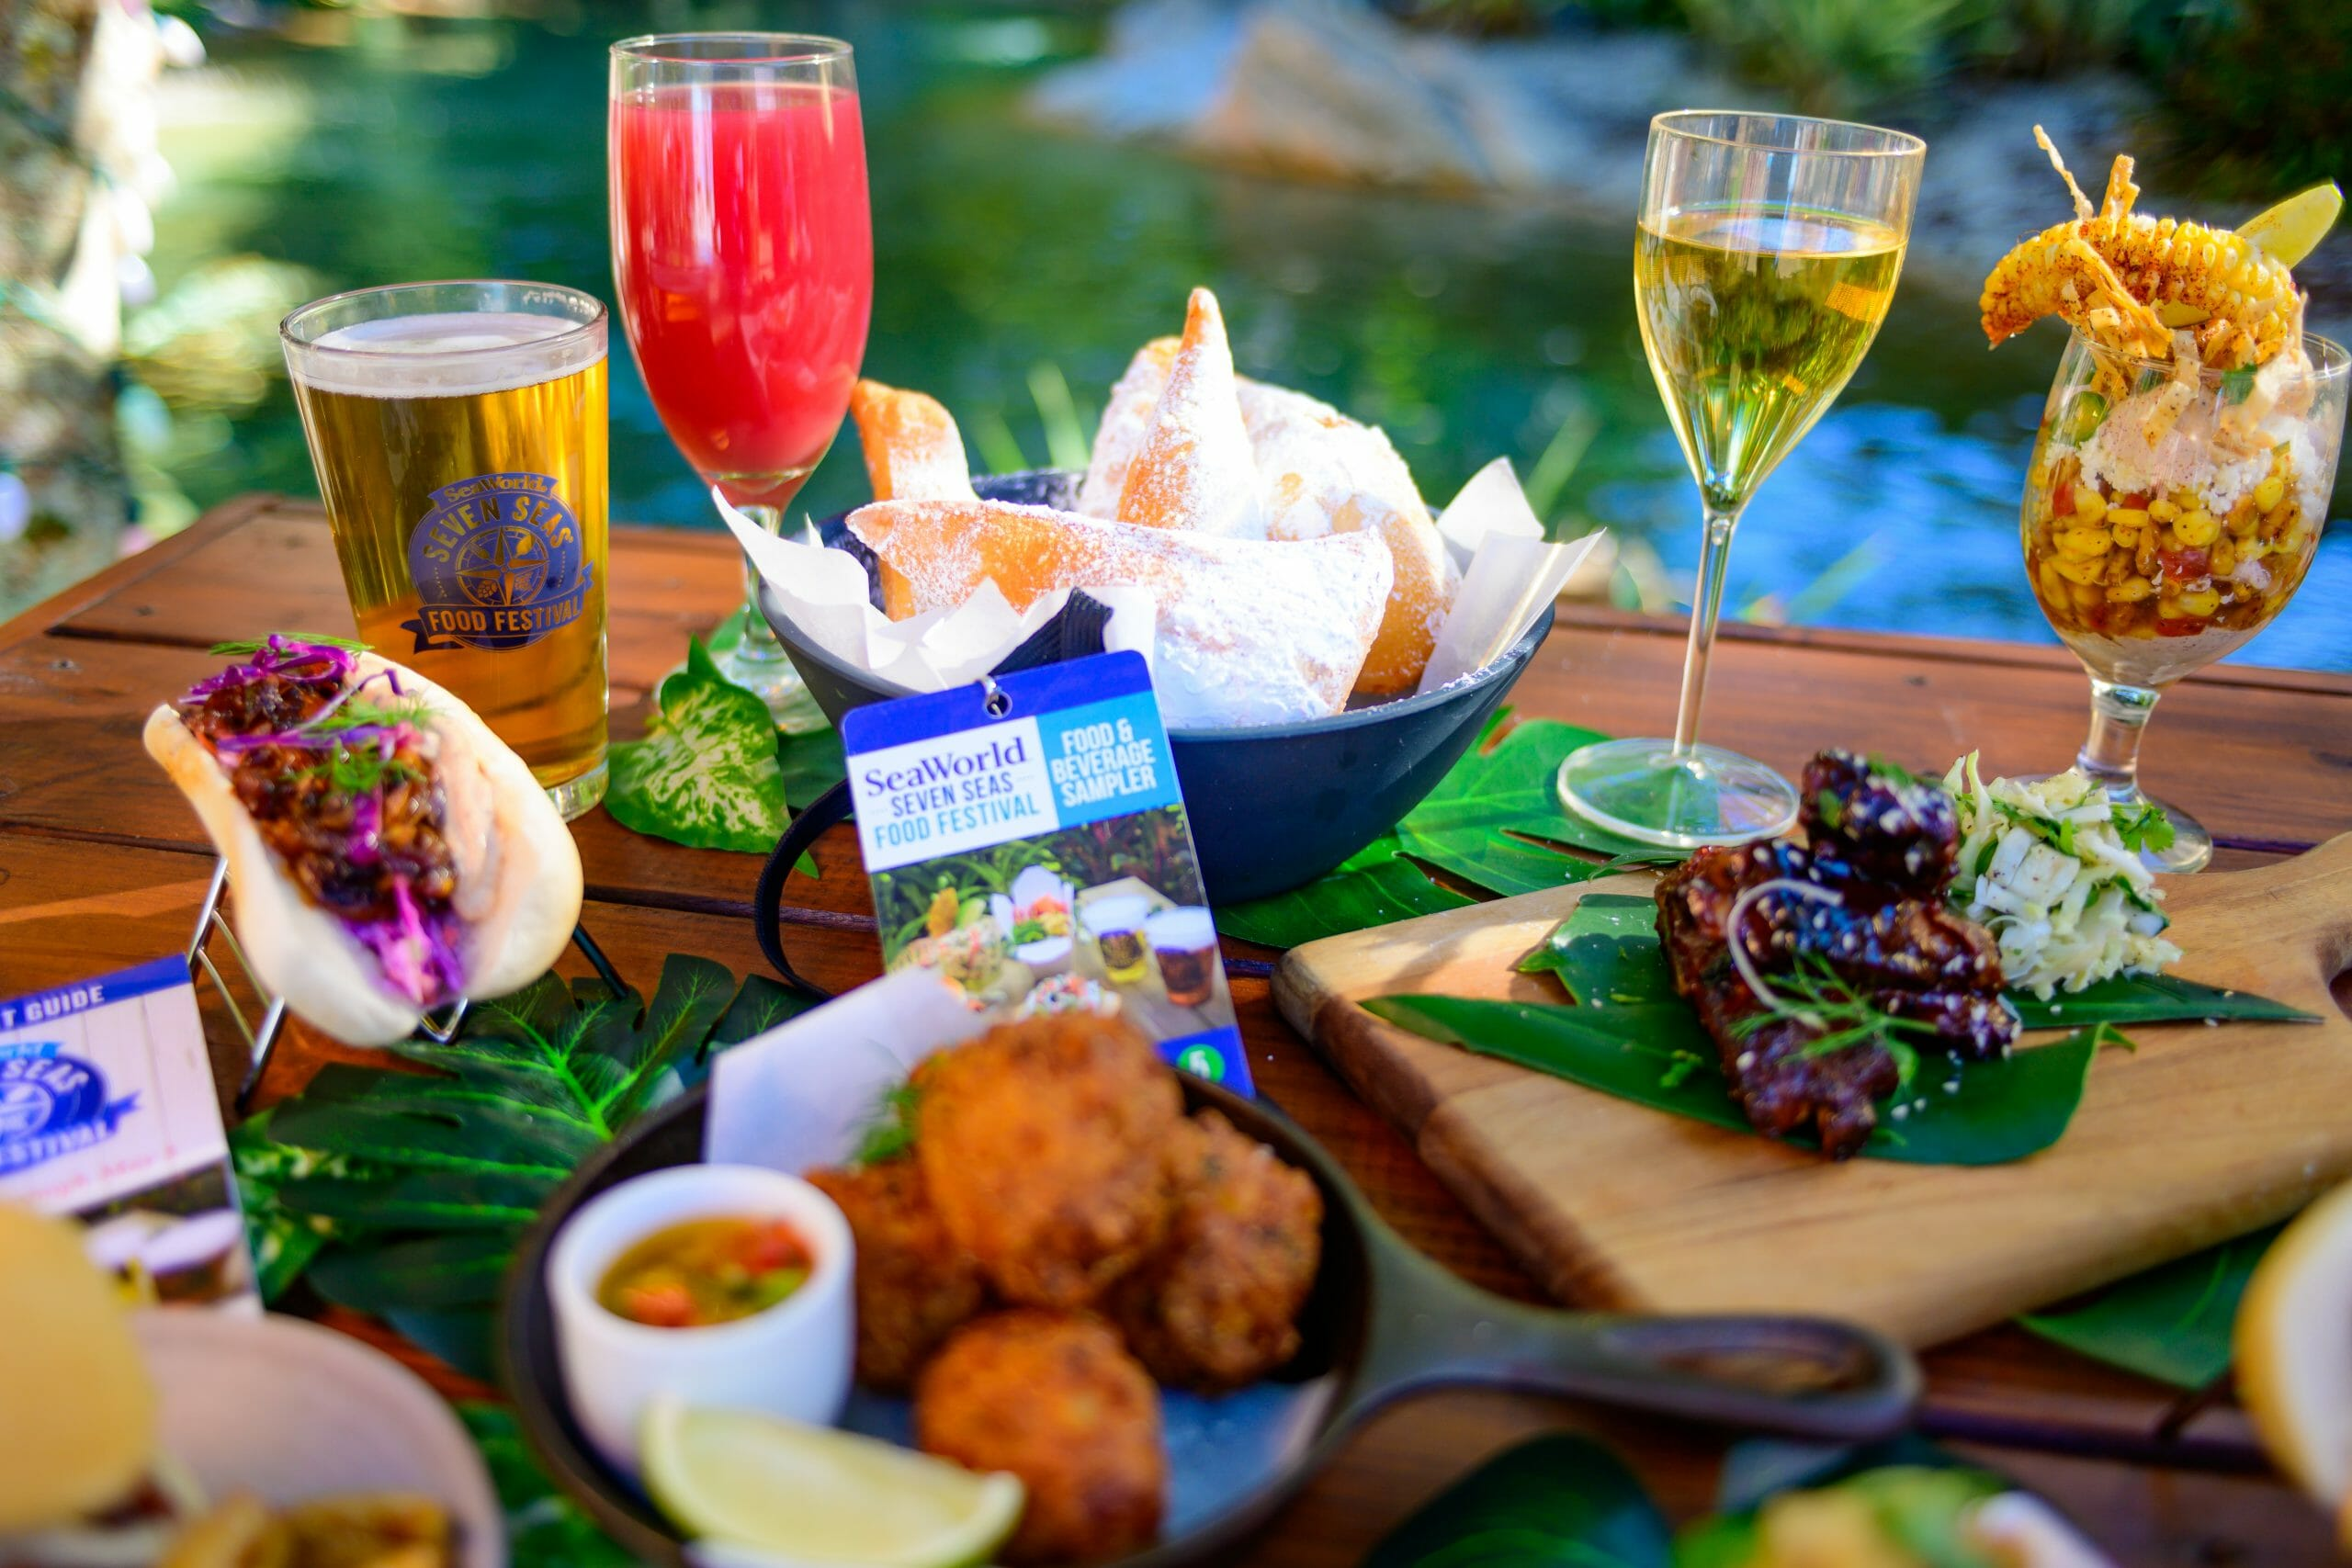 Seven Seas Food Festival Is Back in 2021 At SeaWorld Orlando